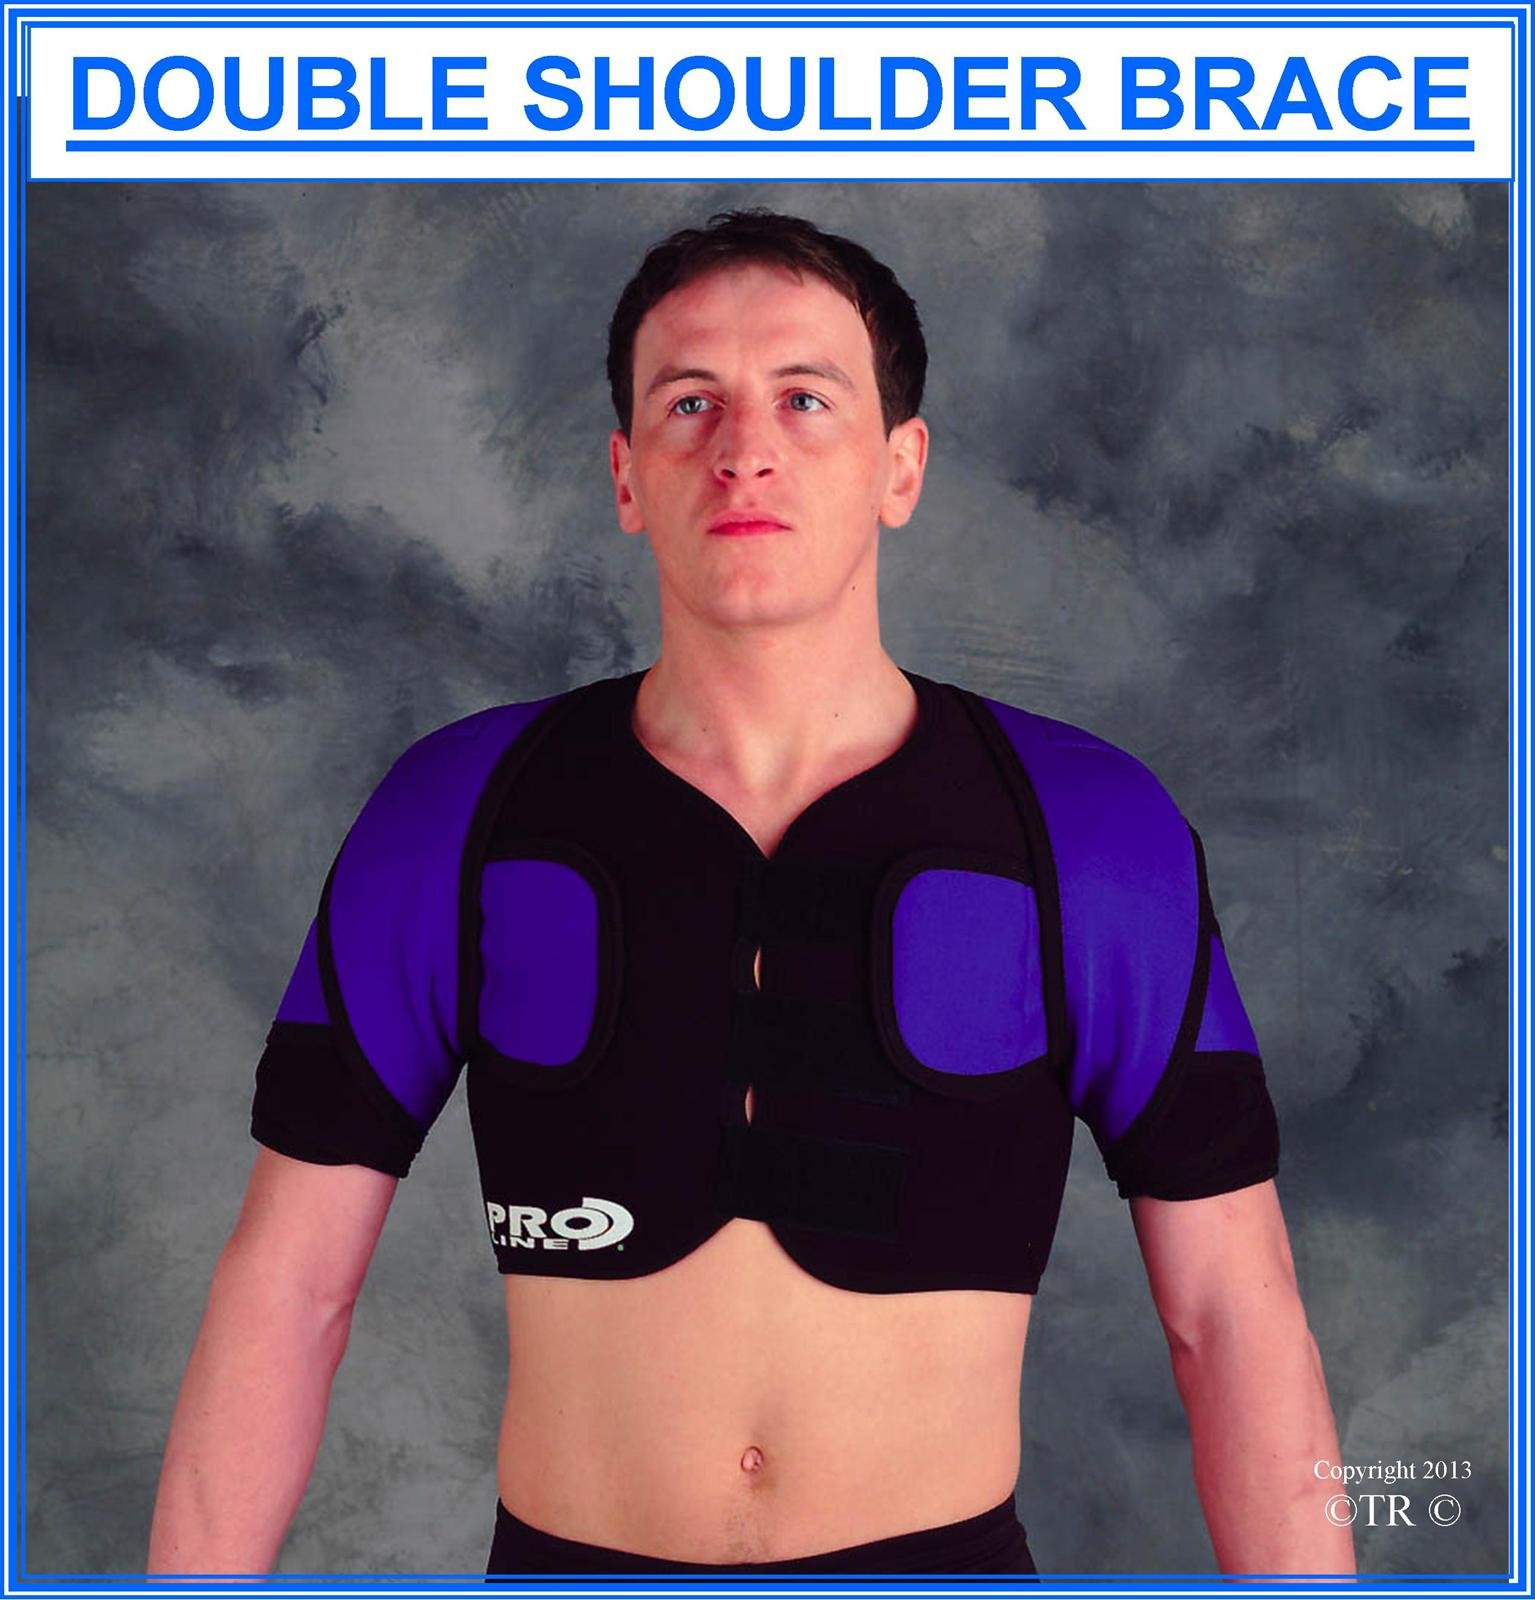 Proline Double Shoulder Brace - Black - Small/Medium